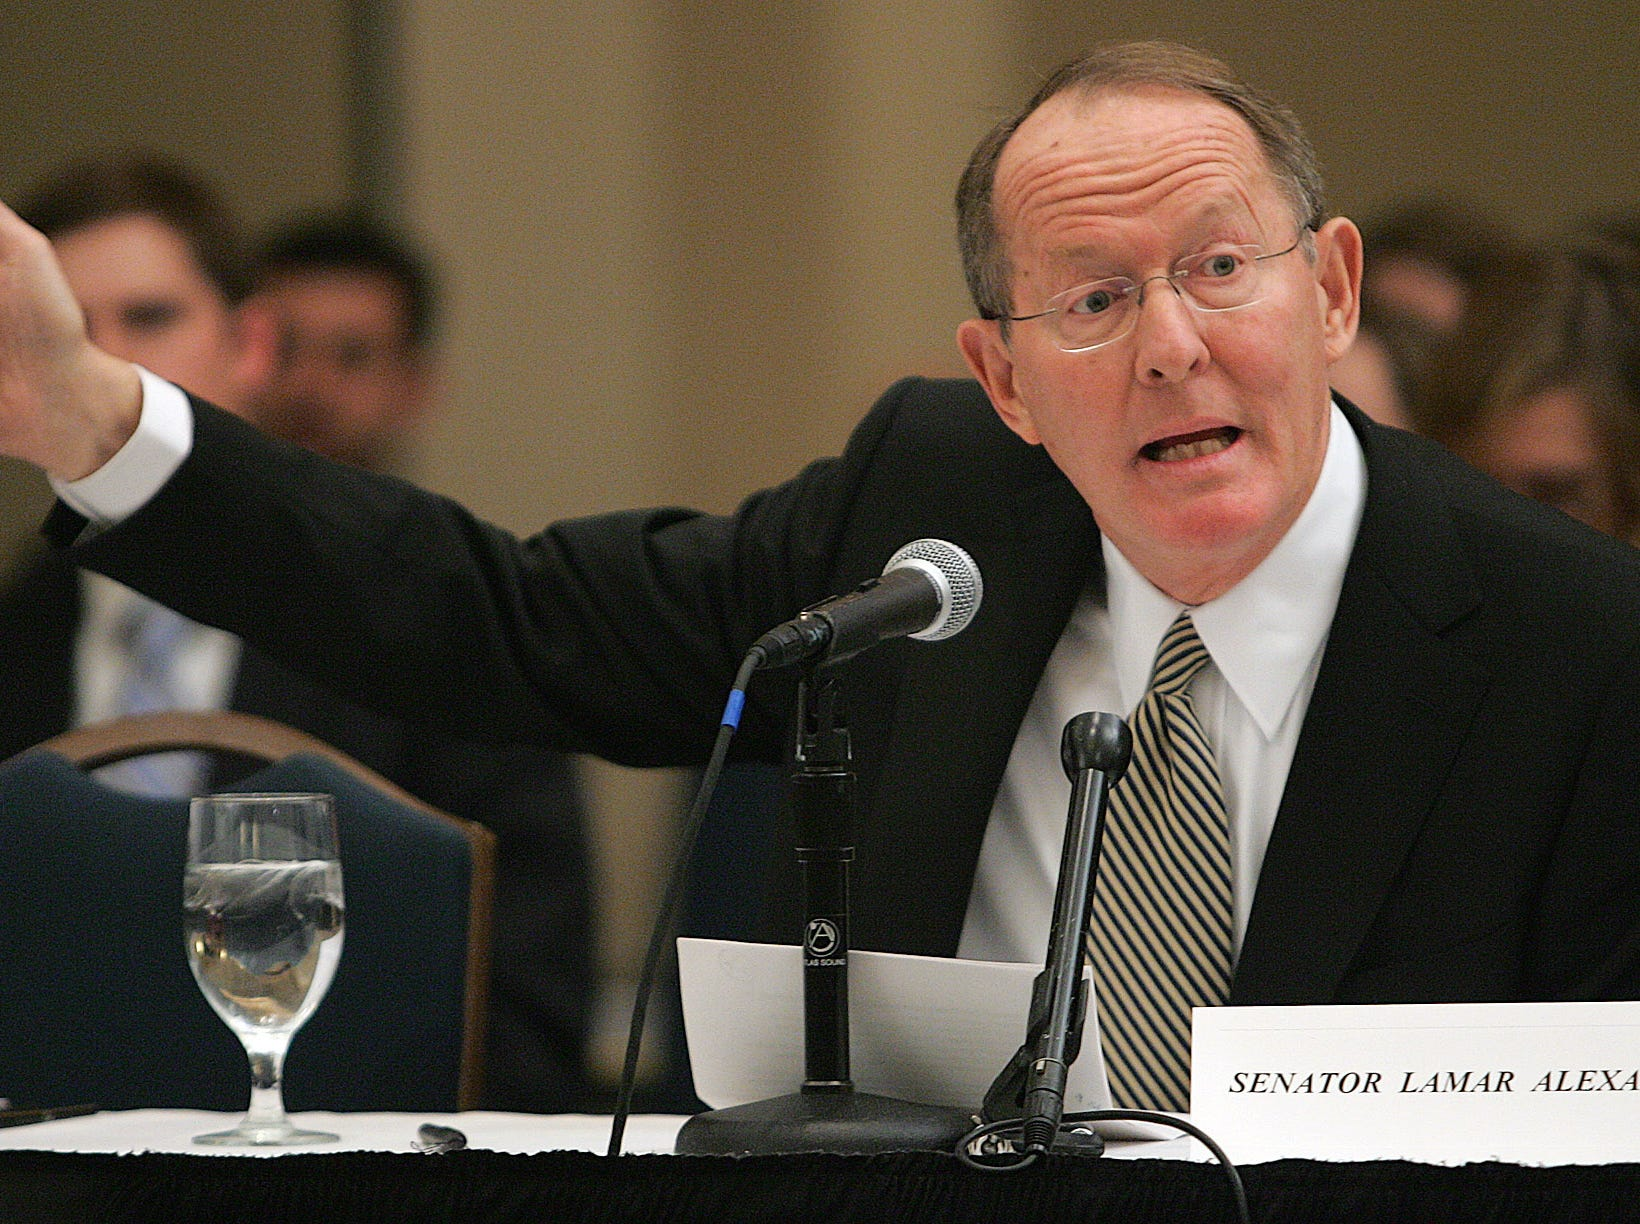 Sen. Lamar Alexander, R-Tenn., testifies before the Commission On The Future of Higher Education in Nashville, Tenn., Friday, Dec. 9, 2005.